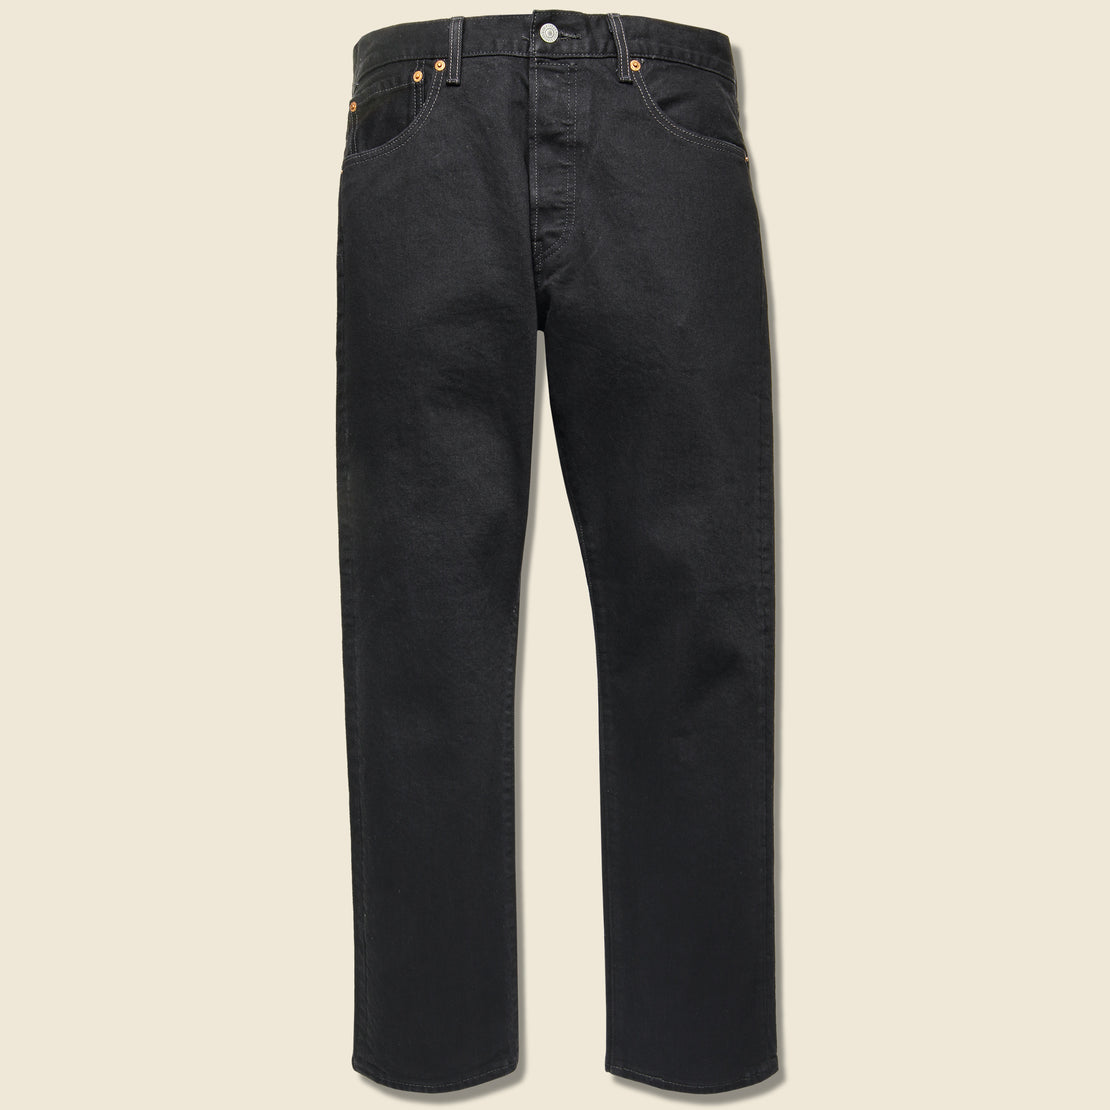 Levis Premium 501 '93 Straight Jean - Punk Black